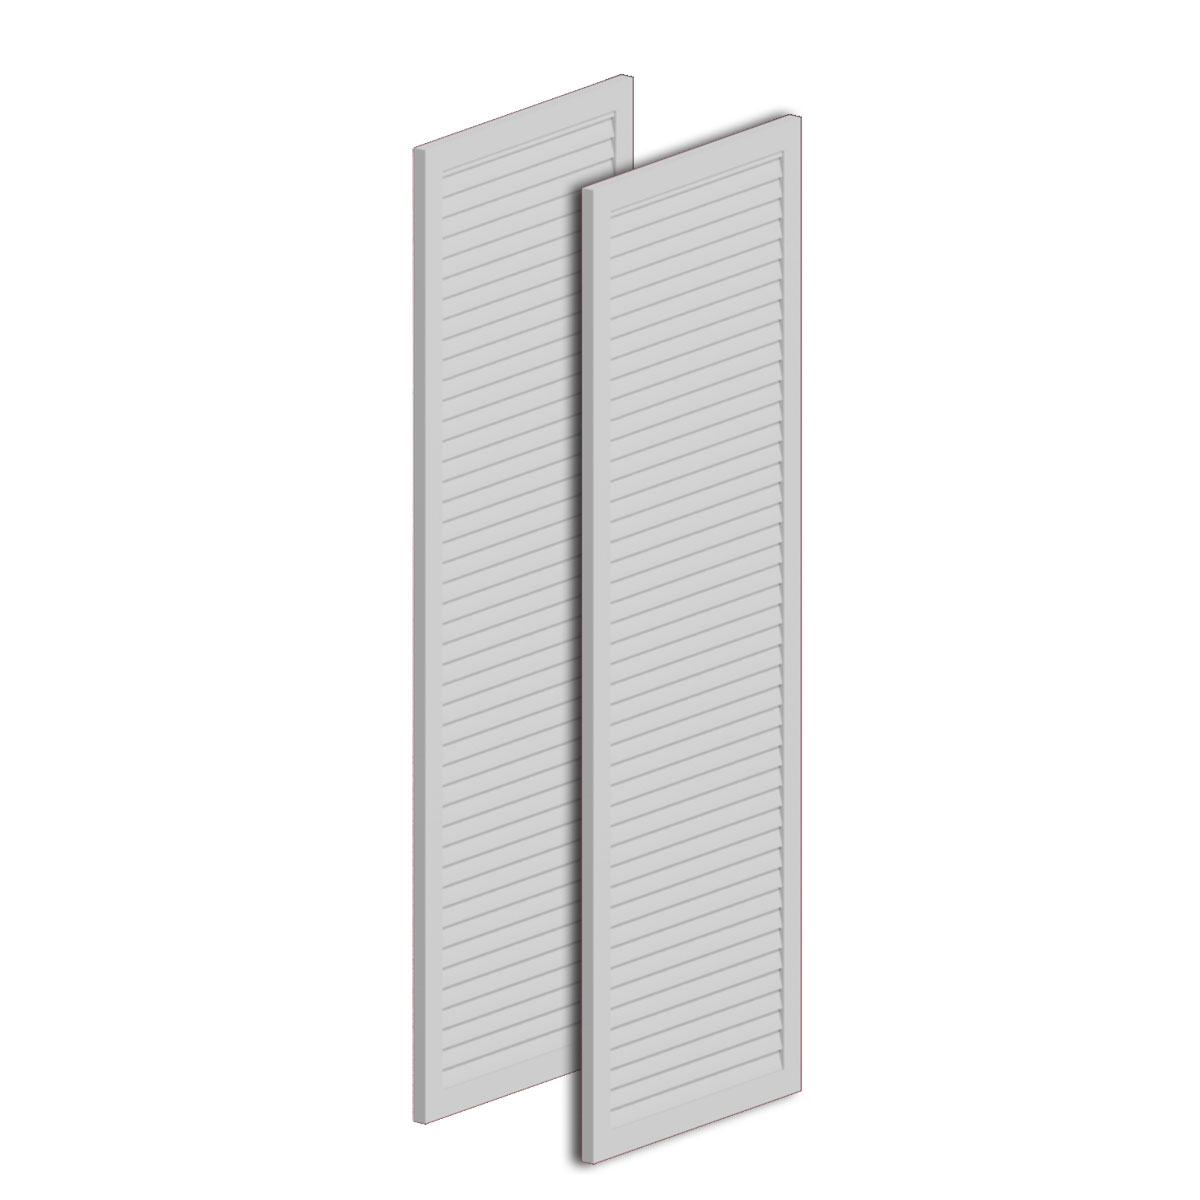 Fypon ltd lvsh24x60fnb 24 inch w x 60 inch h x 1 inch p lo for Fypon exterior shutters